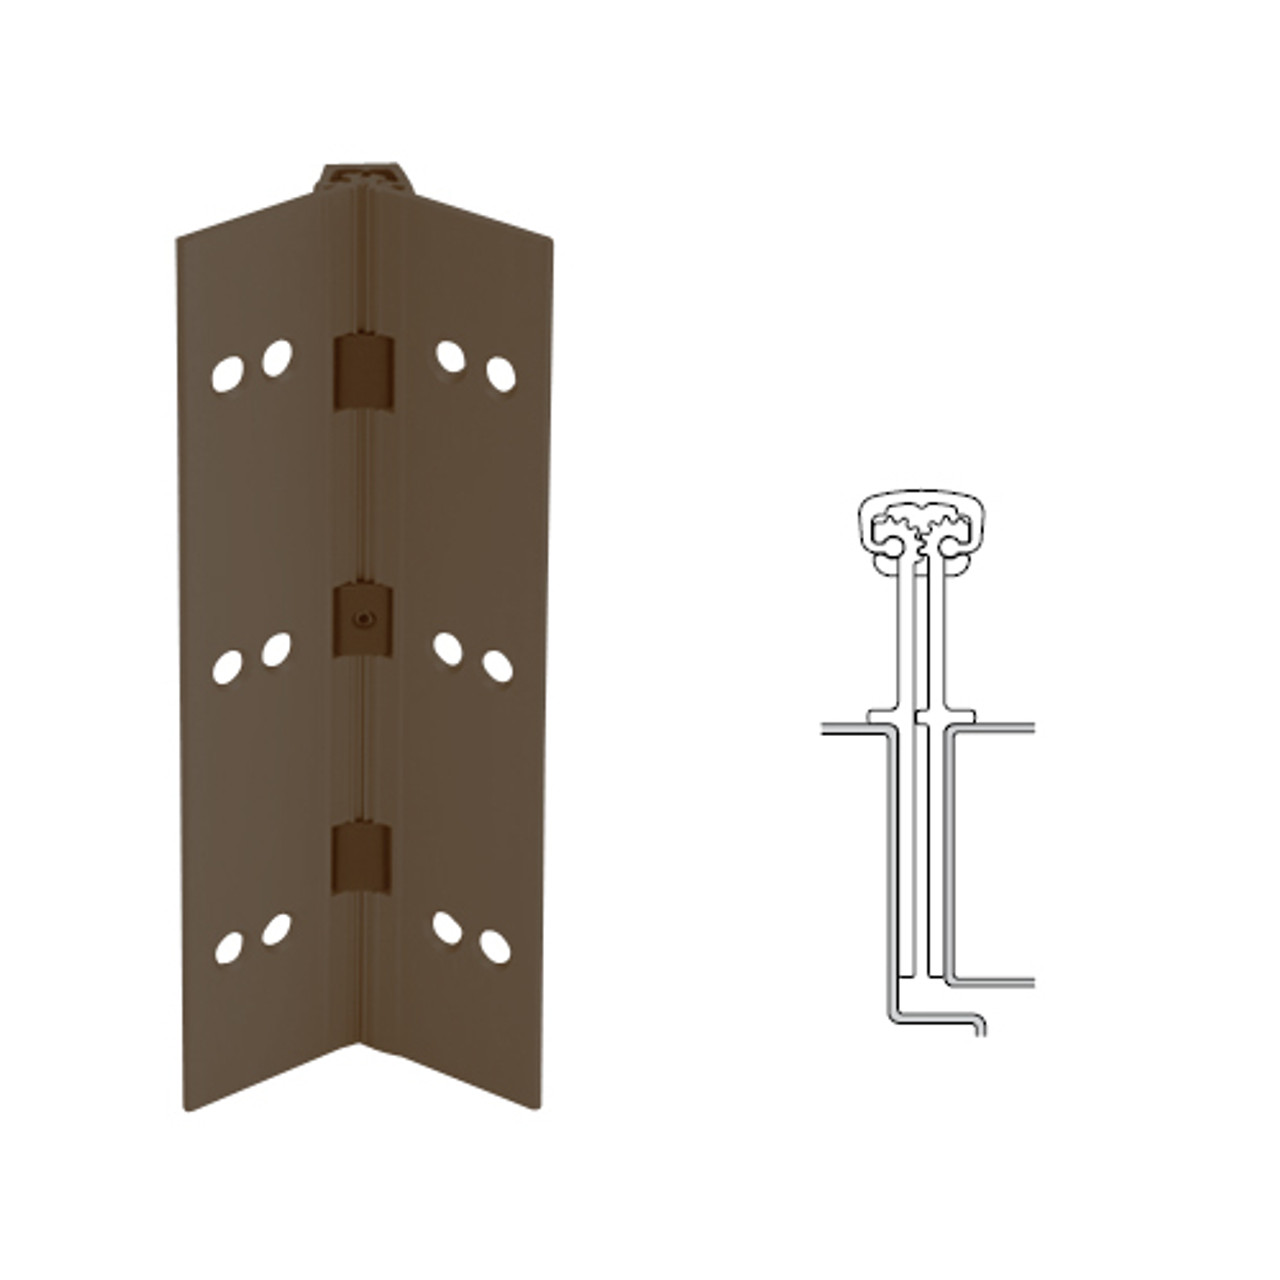 040XY-313AN-83-TEKWD IVES Full Mortise Continuous Geared Hinges with Wood Screws in Dark Bronze Anodized